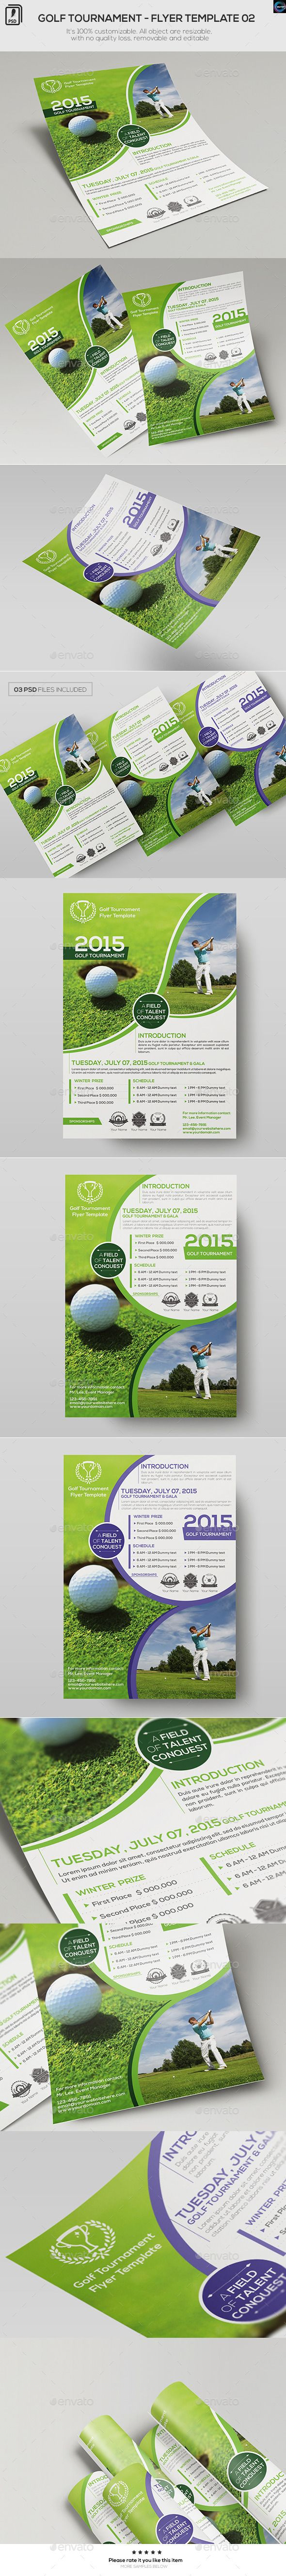 Golf Tournament - Flyer Template 02 - Commerce Flyers